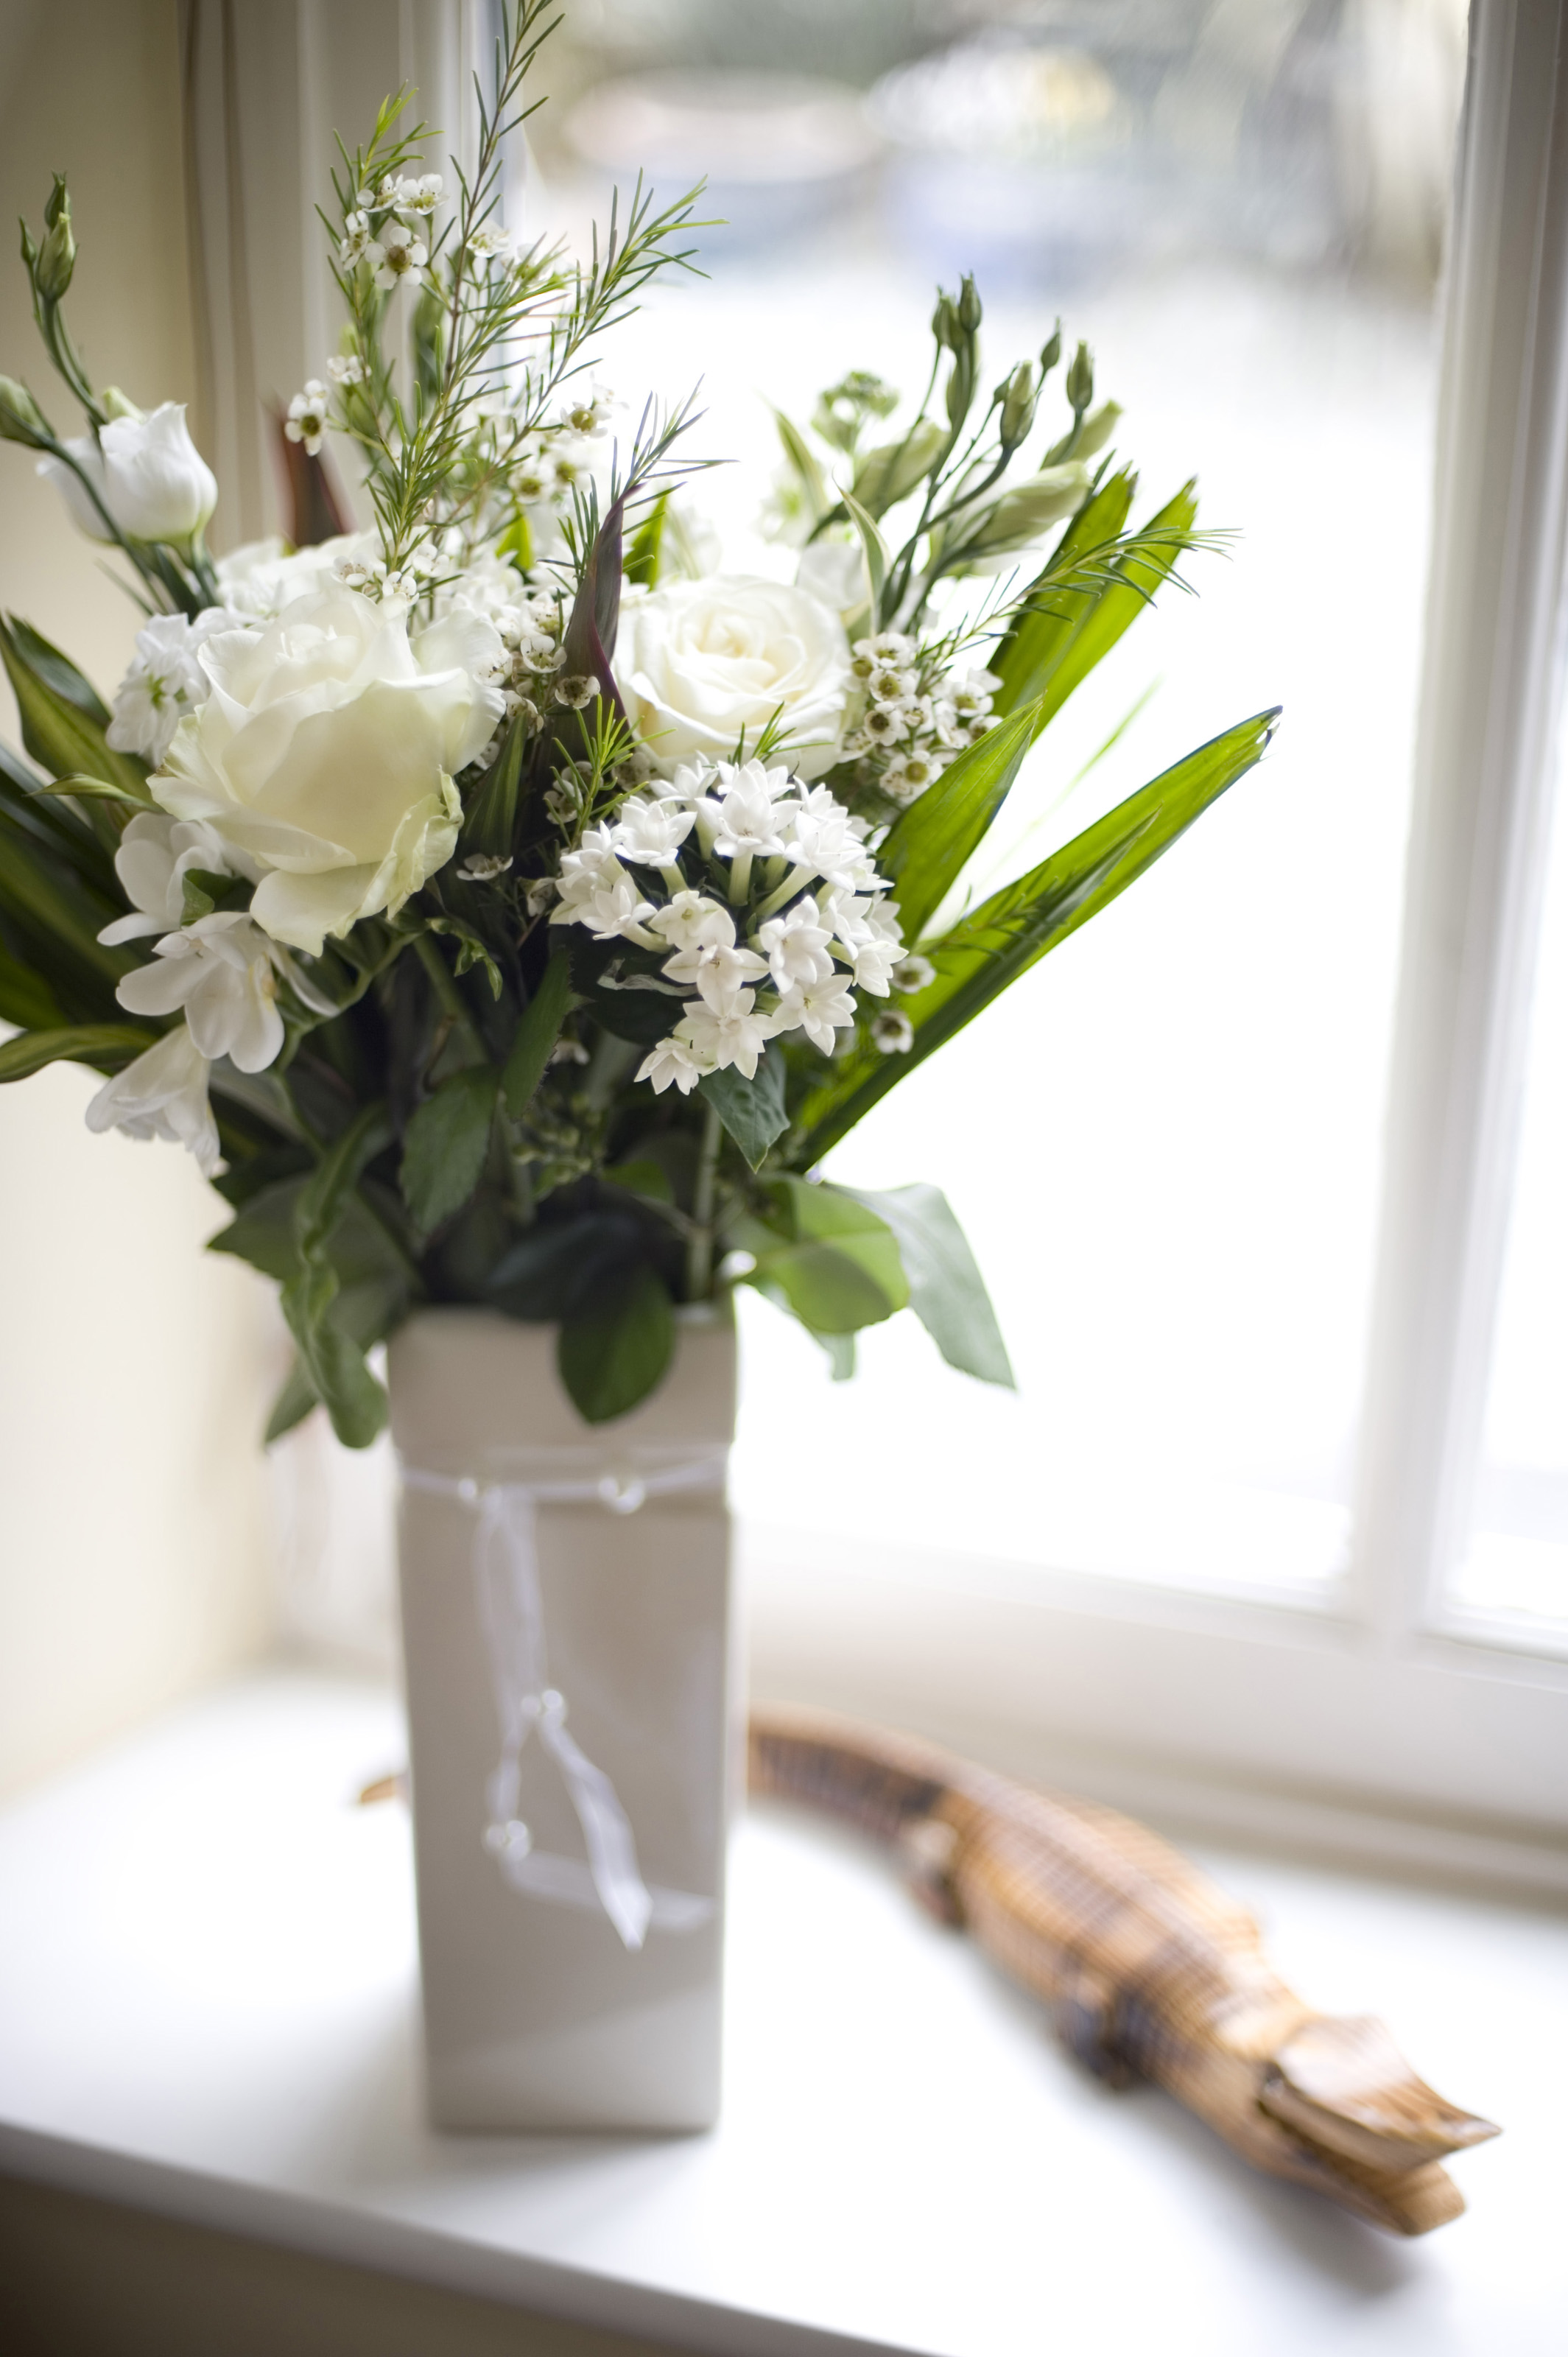 Vase of white flowers 4239 stockarch free stock photos accept license and download image mightylinksfo